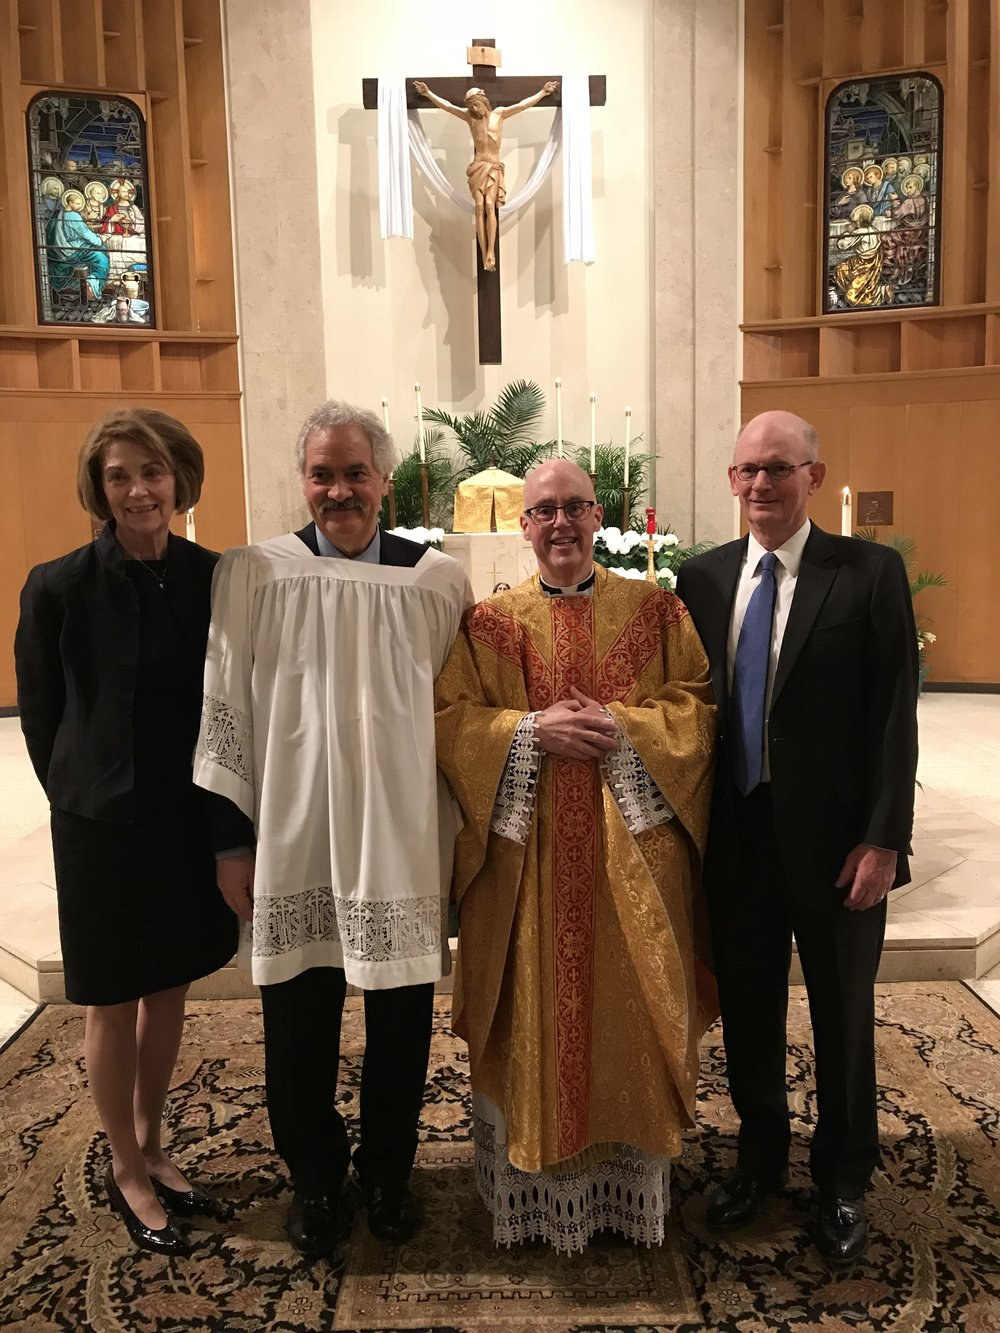 Following the Easter vigil, the newly Baptized and Confirmed Al Behbehani wears his White Baptismal gown and poses with his sponsors, Mary Anne and Rod Weaver, and Fr. Healey, OLM Pastor.